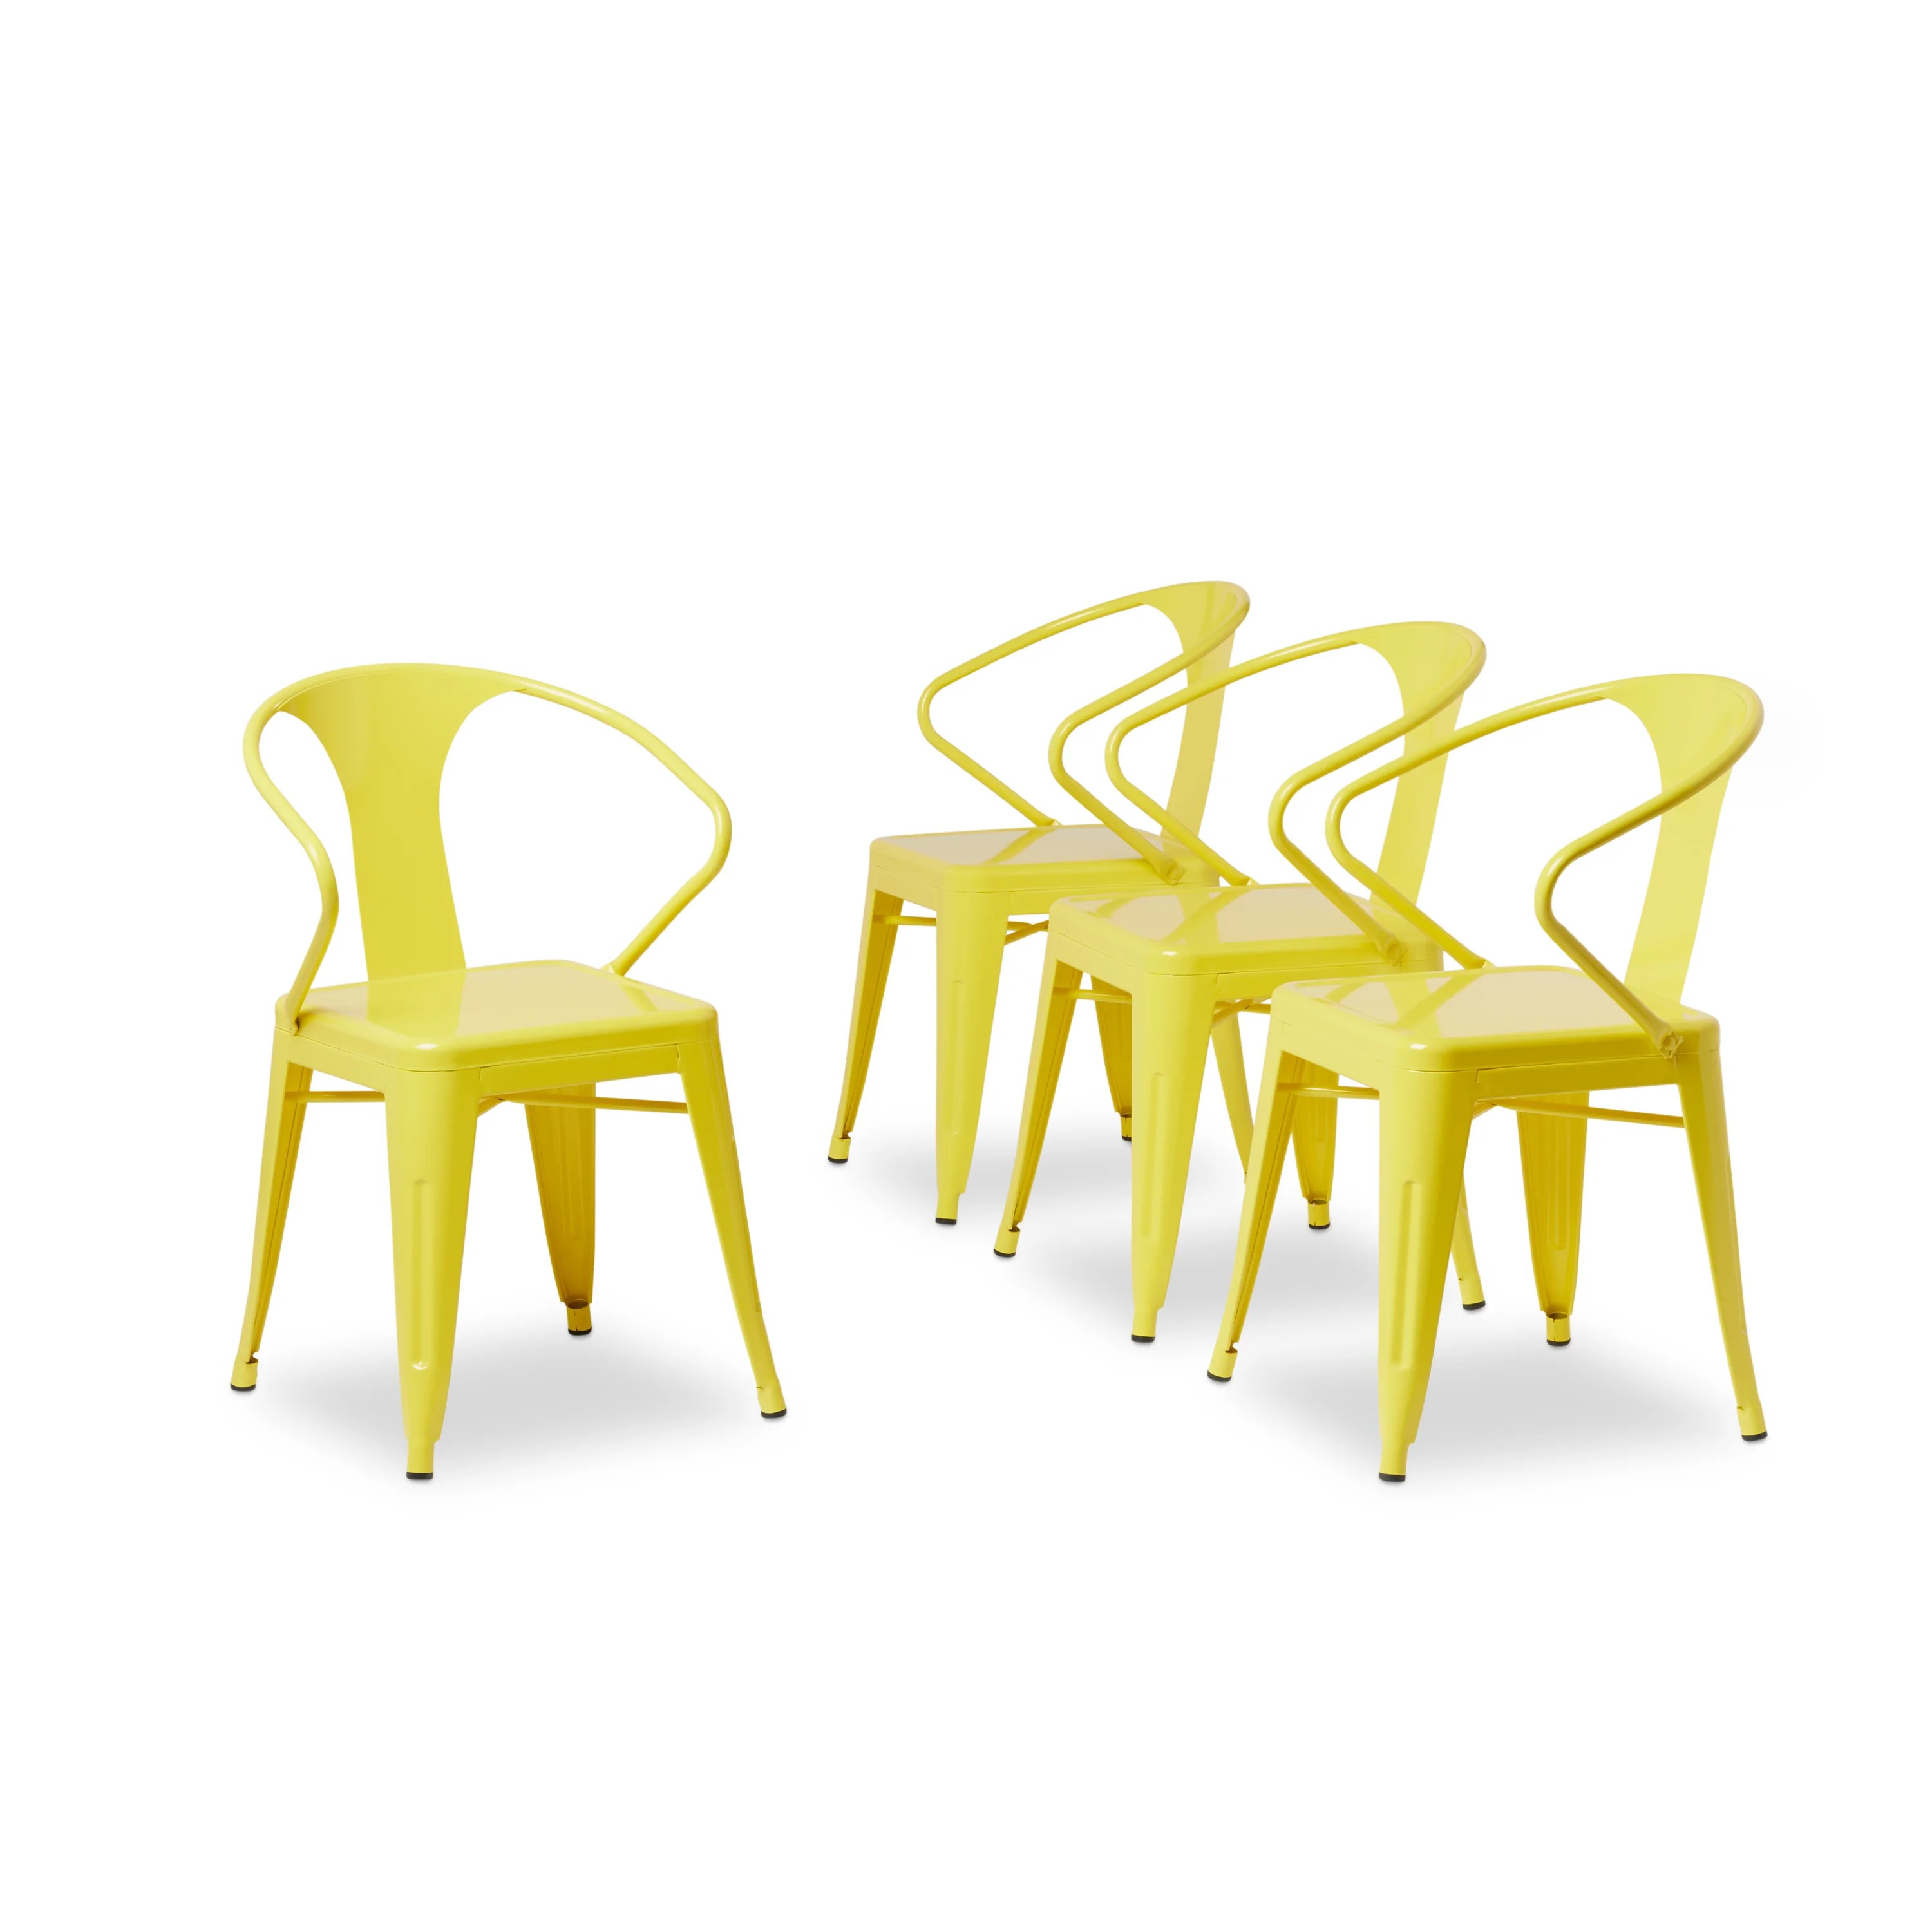 metal stacking chairs outdoor patio chair leg caps shop tabouret lemon set of 4 free shipping today overstock com 6839568